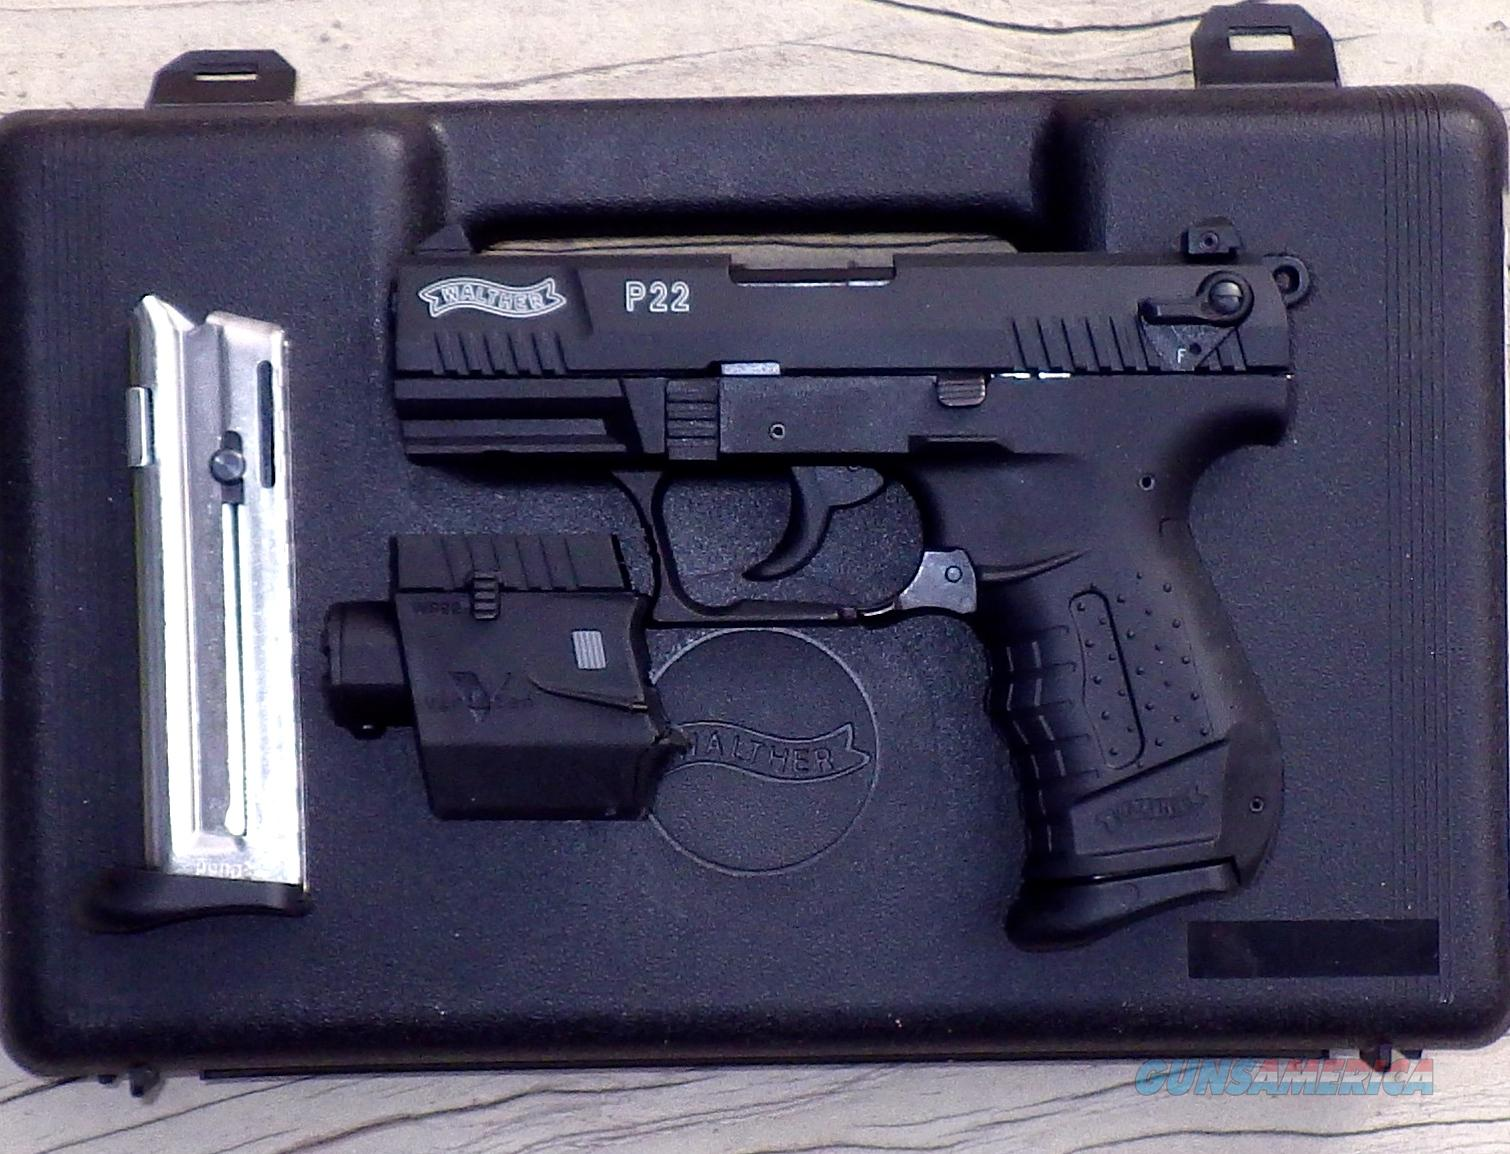 Walther P22 .22 LR, Viridian green laser, 2 mags, 3.4-inch, new in box  Guns > Pistols > Walther Pistols > Post WWII > P22